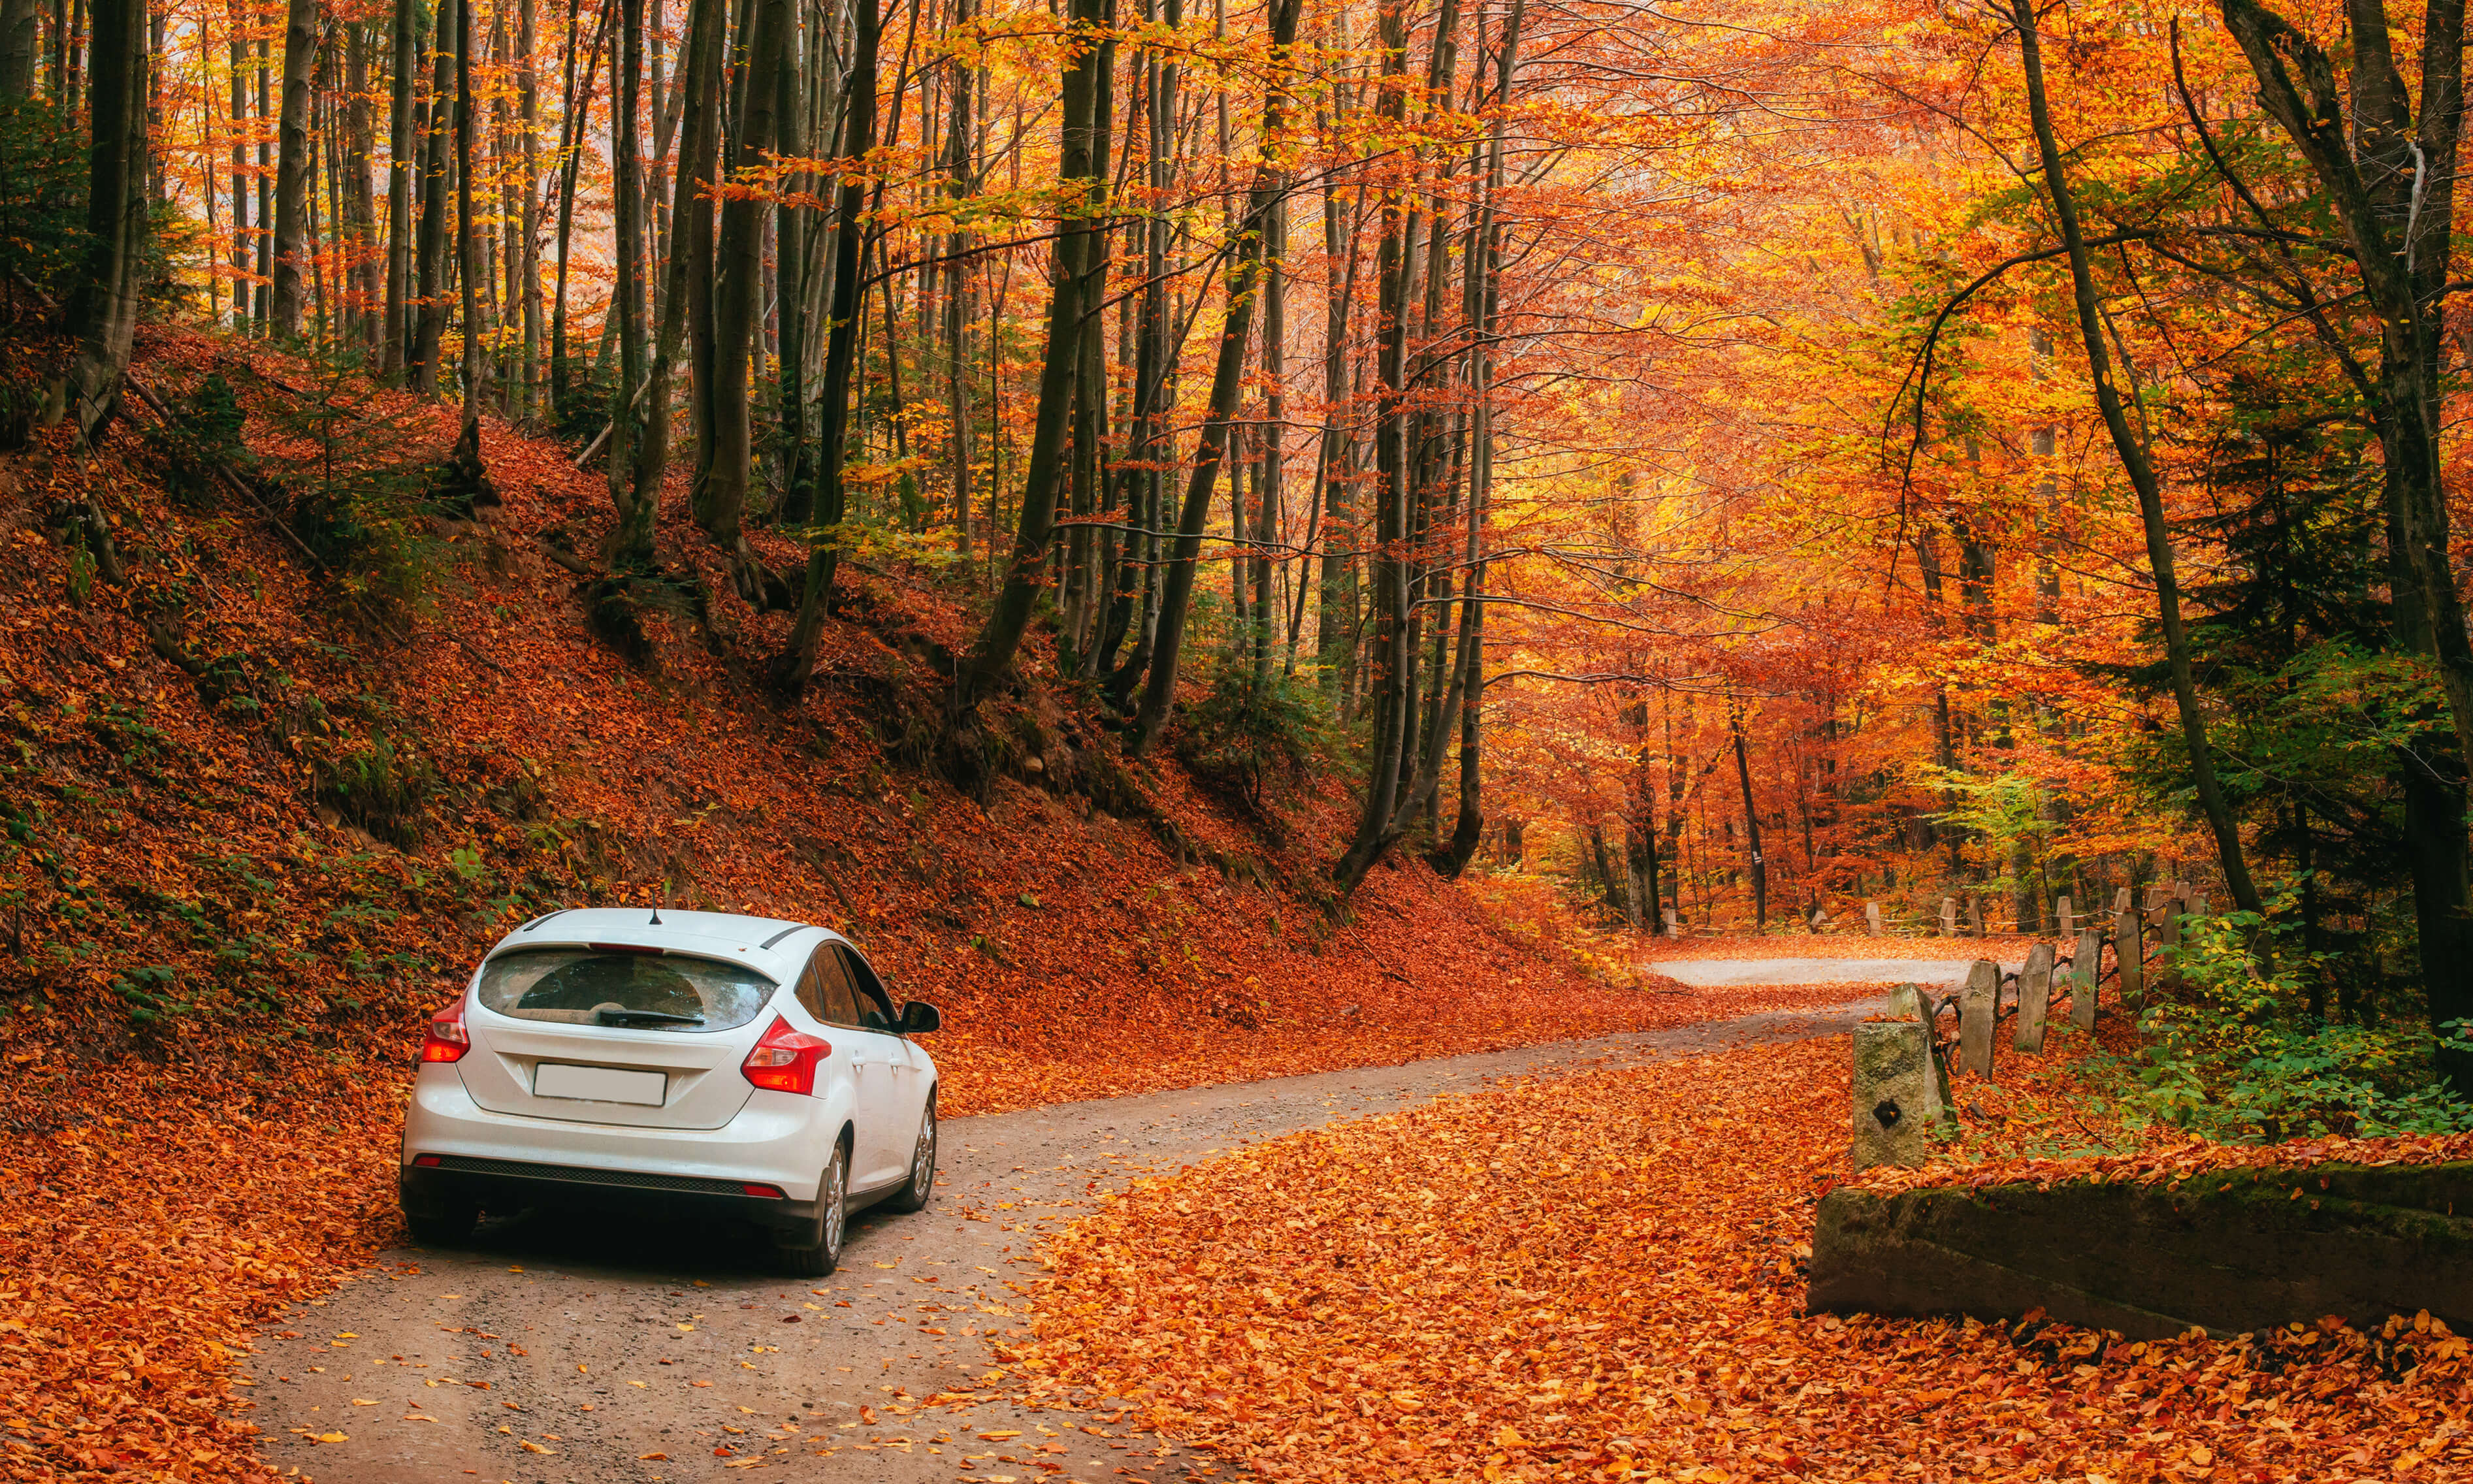 Preparing your vehicle for Autumn / Fall Weather